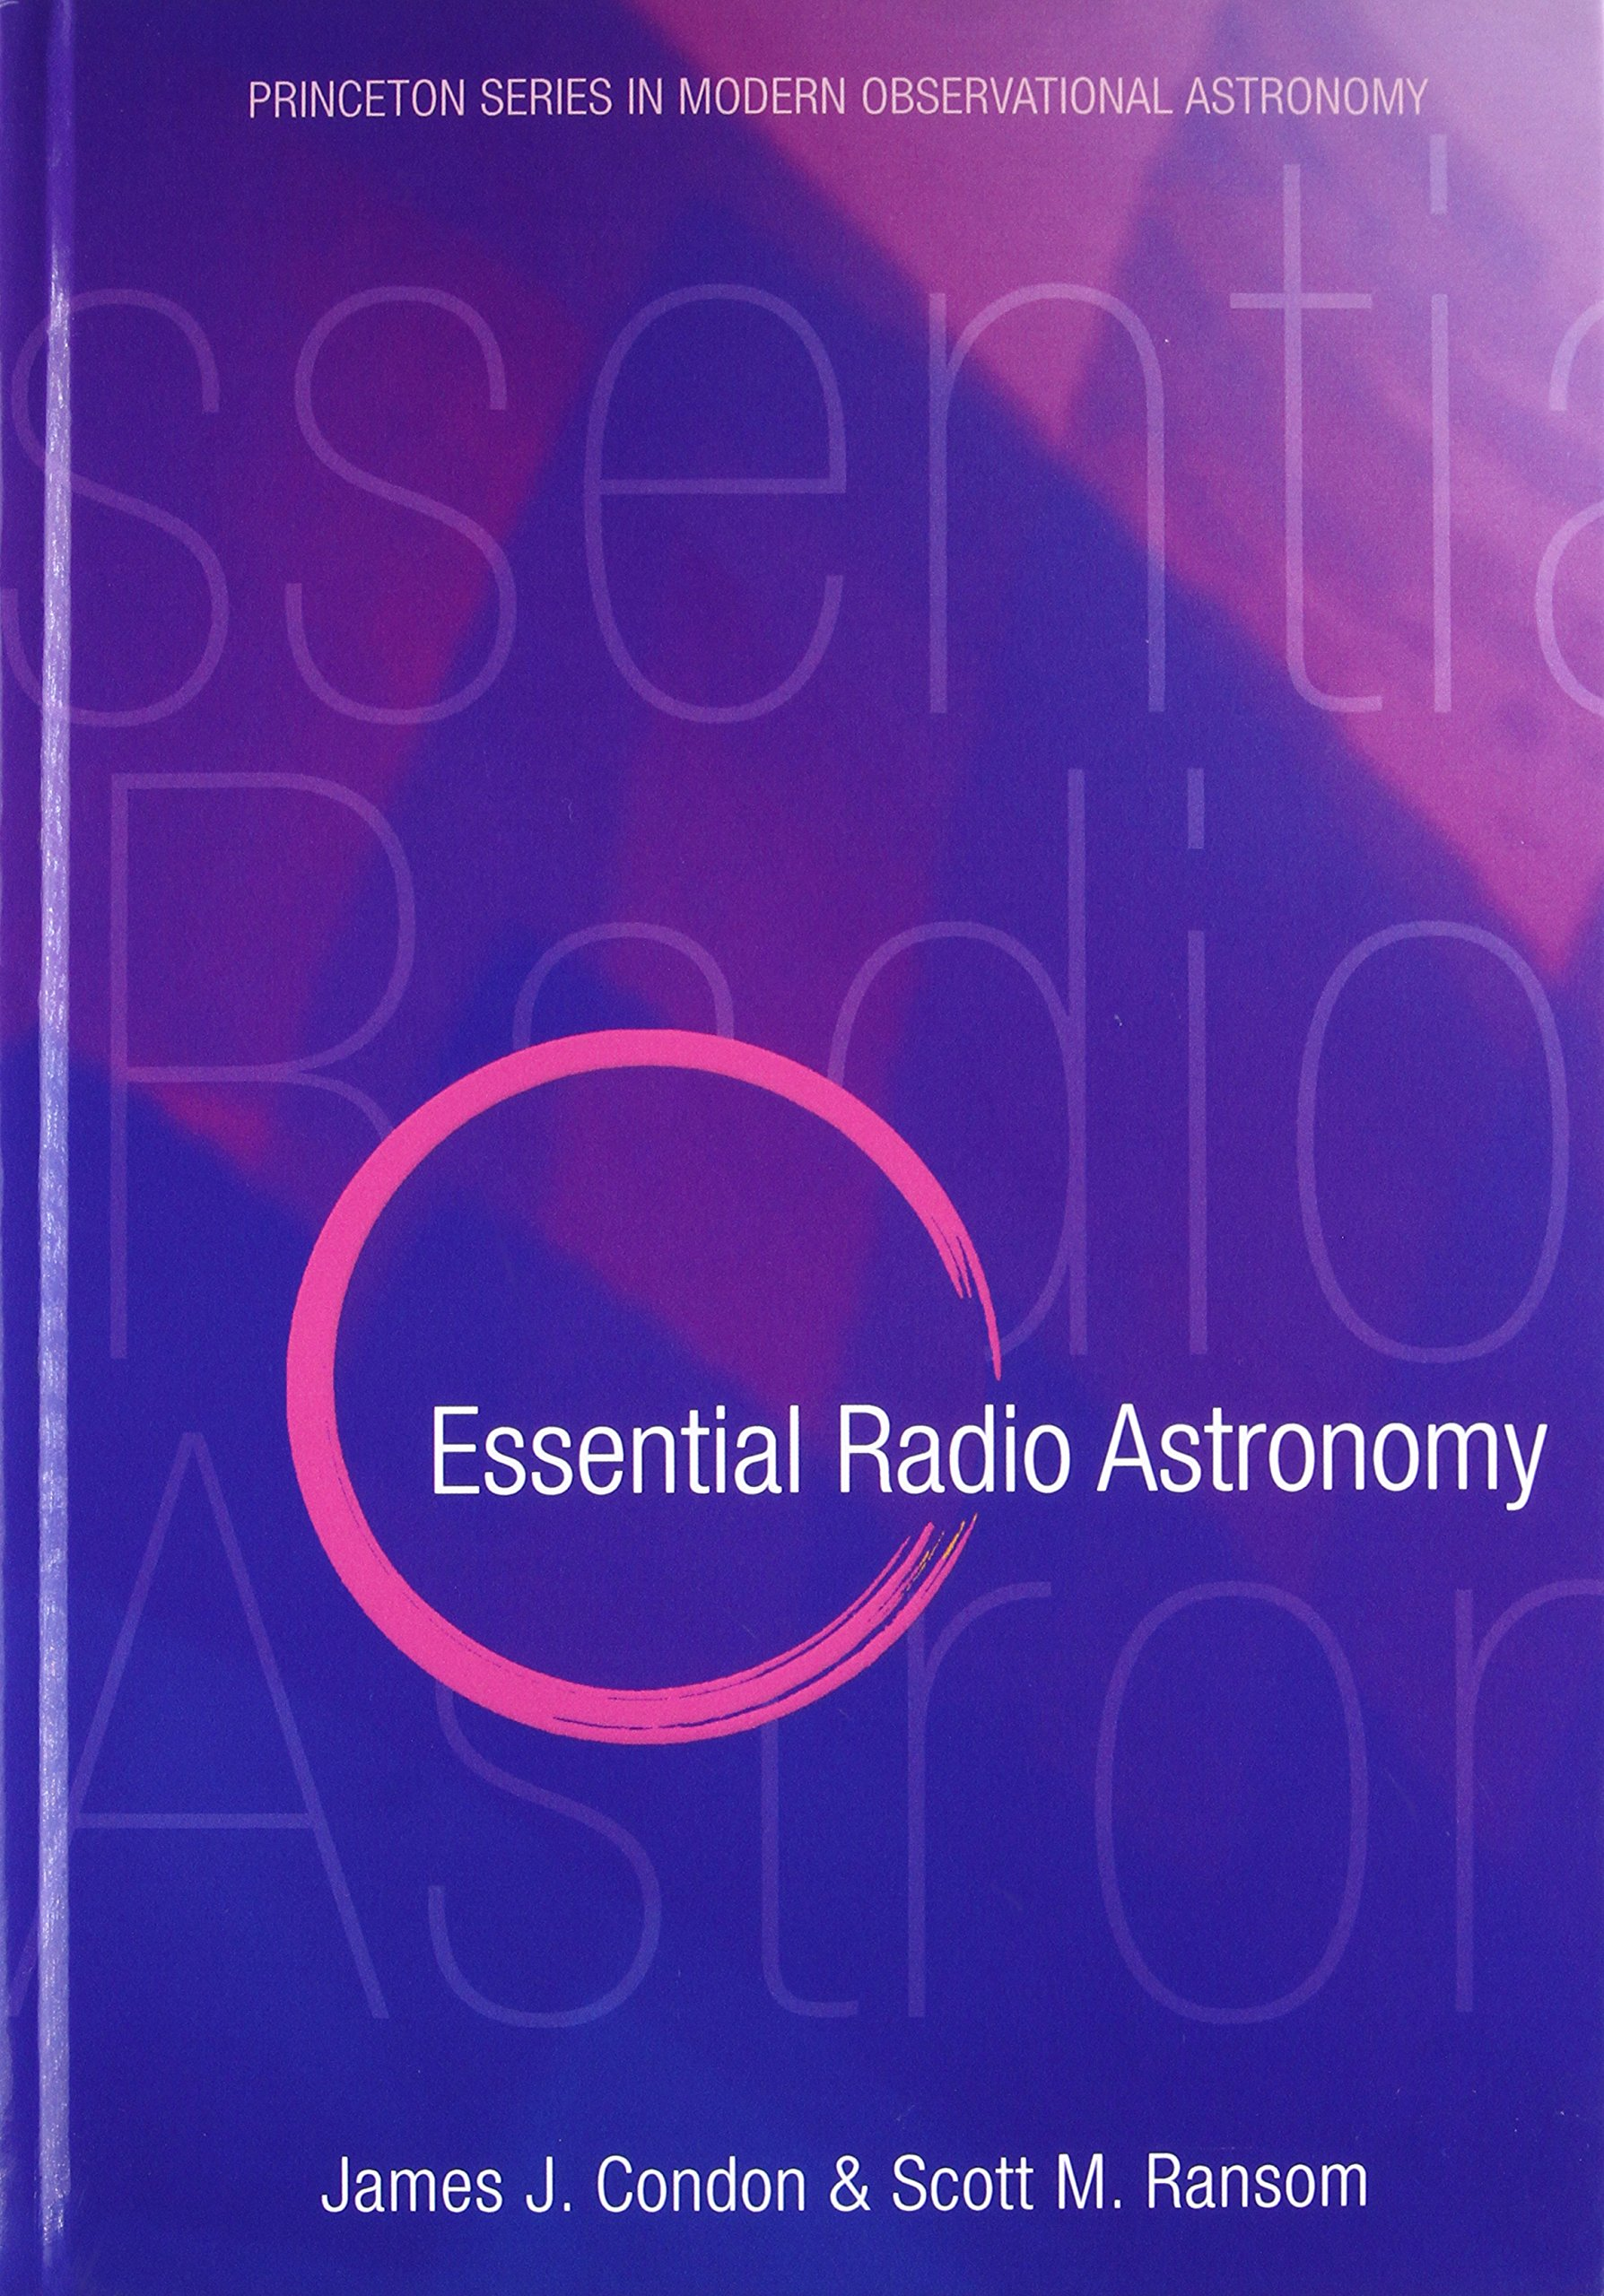 Essential Radio Astronomy (Princeton Series in Modern Observational Astronomy) PDF